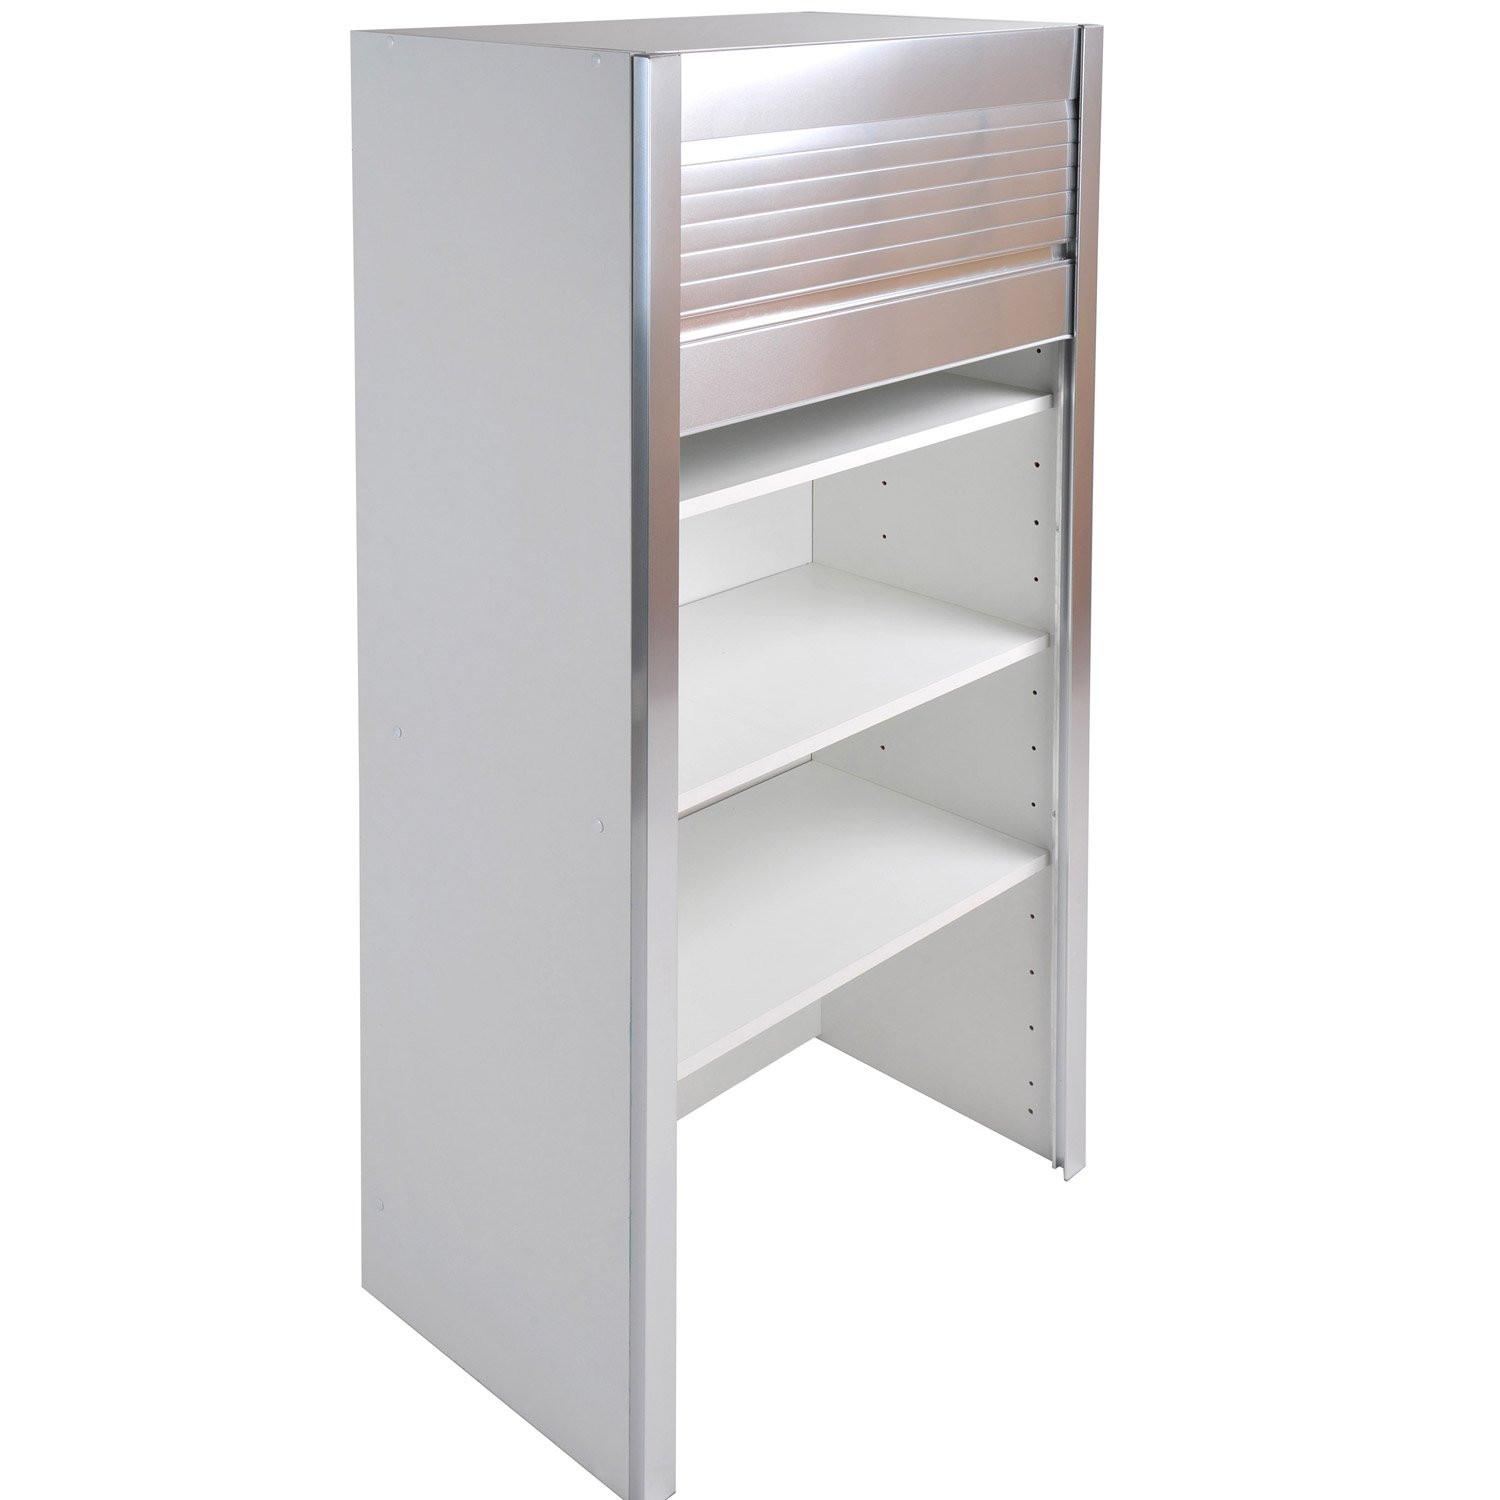 Armoire Volet Roulant Cuisine Ikea  Bright Shadow Online